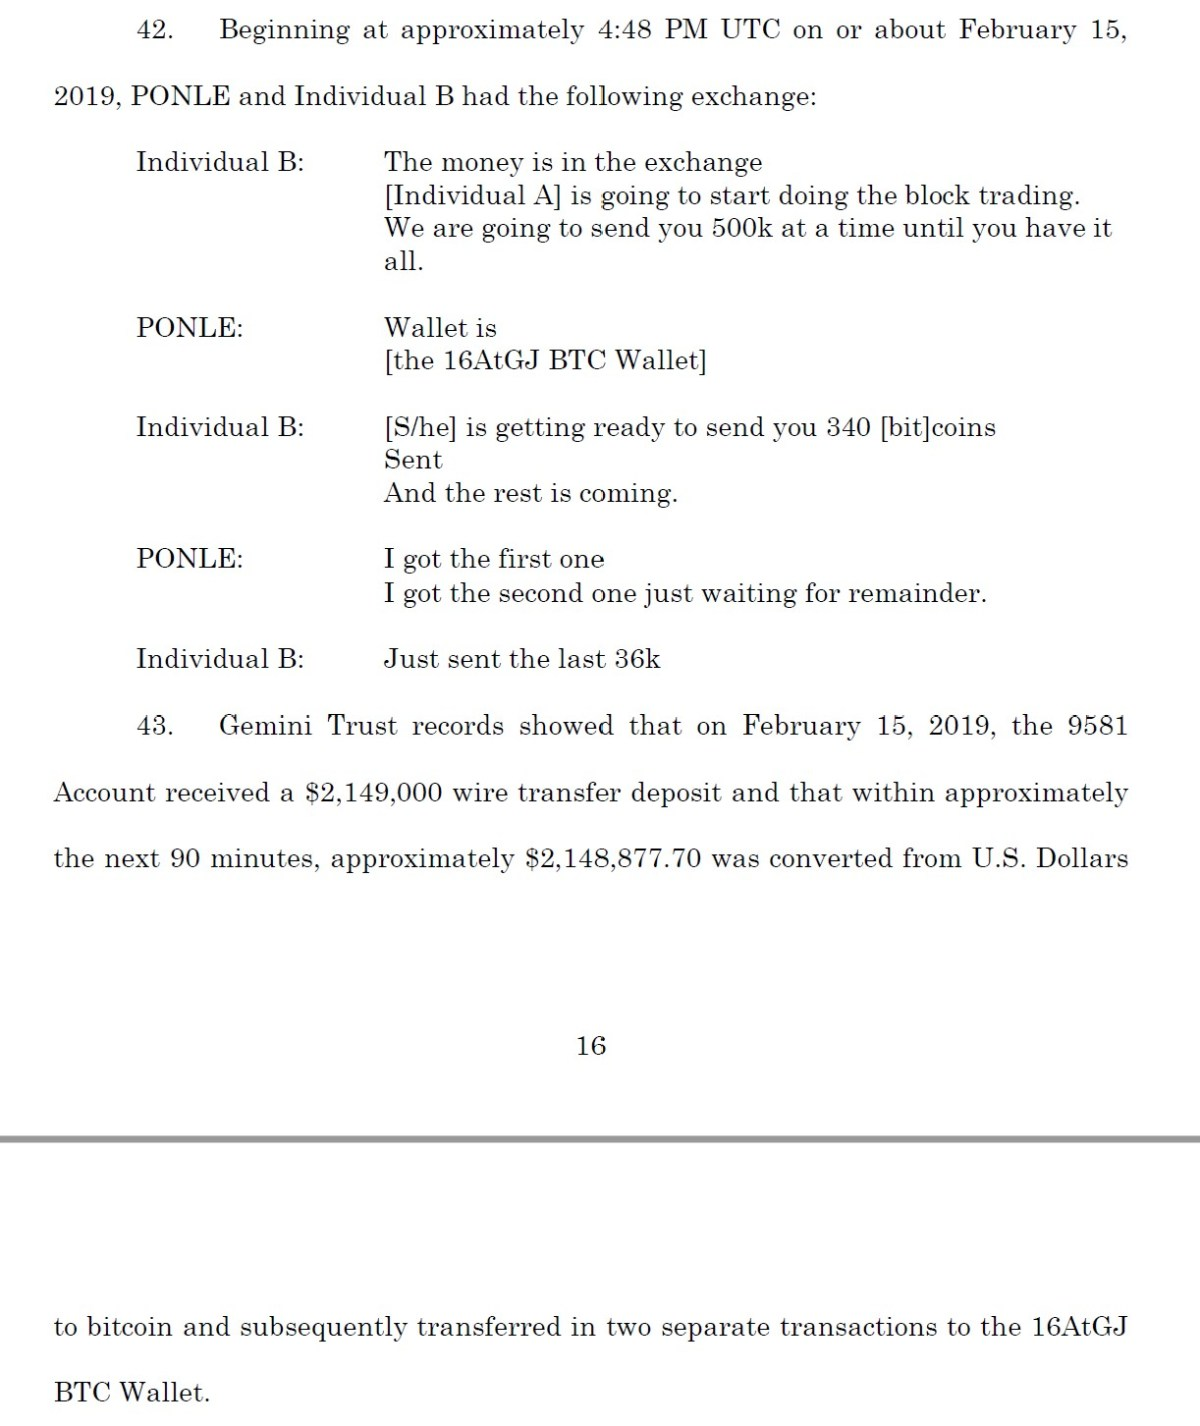 A discussion between Ponle and his associate of the Feb. 15, 2019 transaction